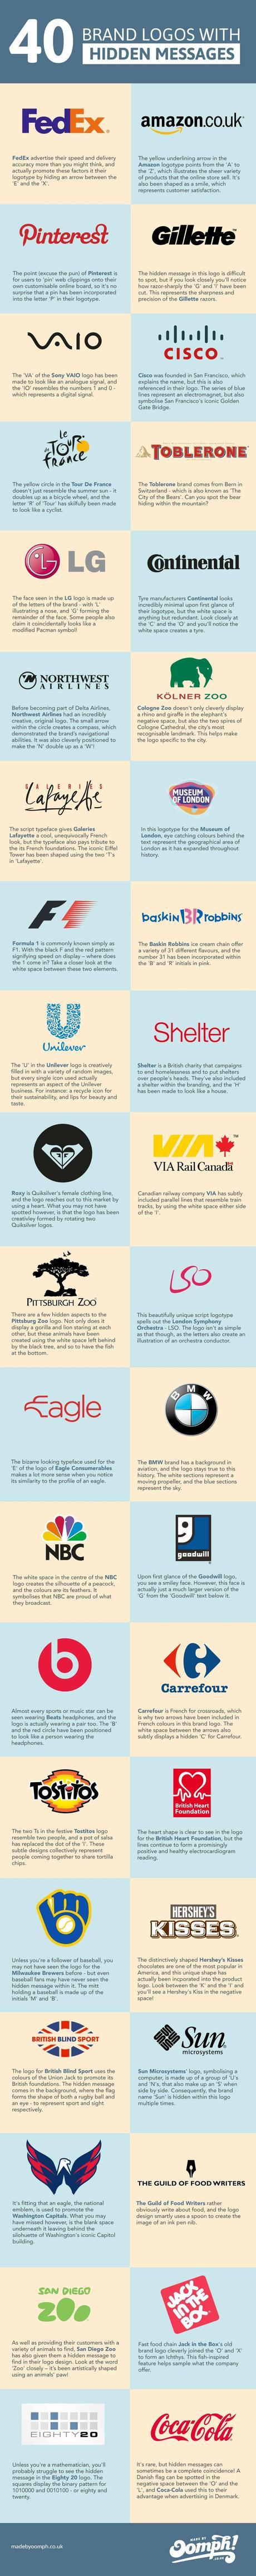 logo design and what they mean